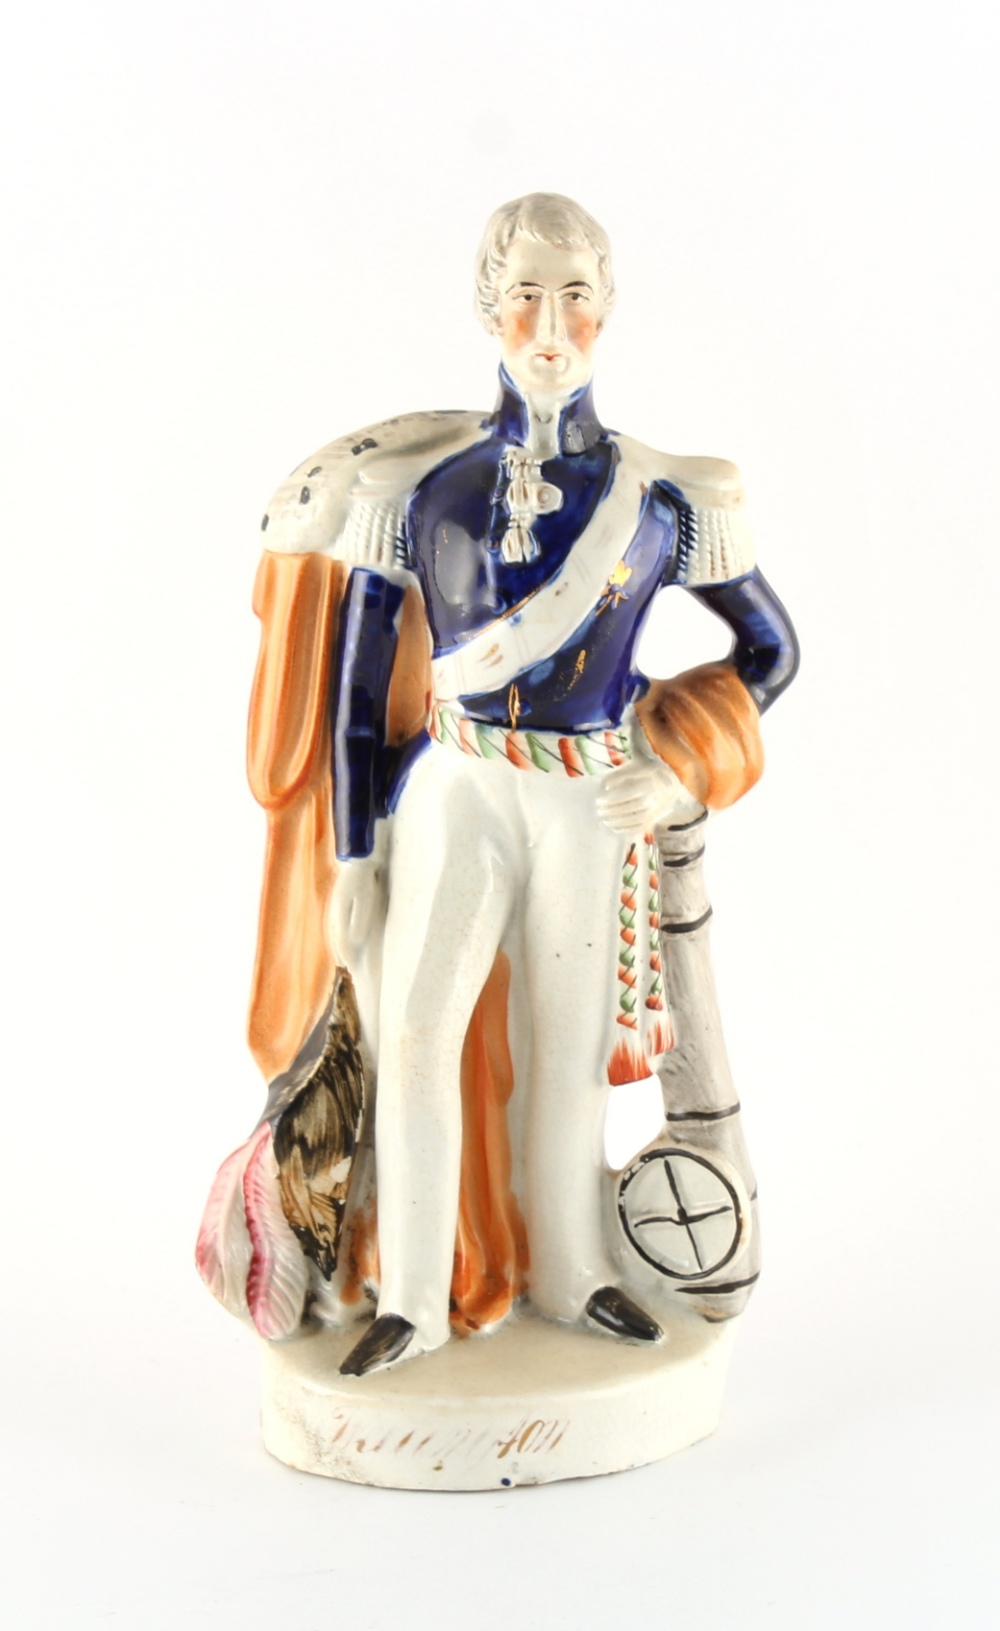 A Victorian Staffordshire figure of the Duke of Wellington, titled to the base. 10.3ins. (26.